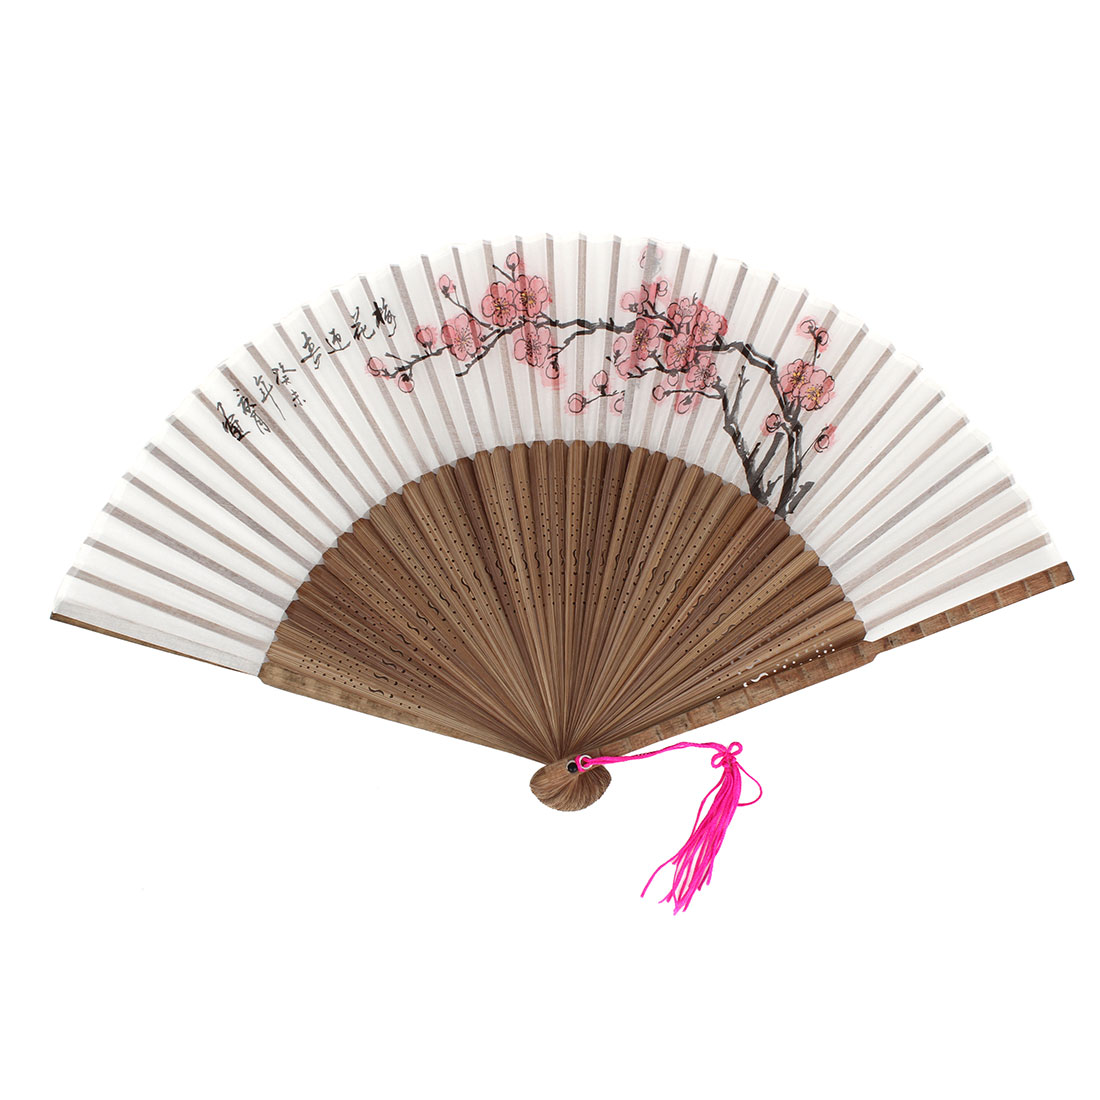 Plum Blossom Pattern Tassels Decor Bamboo Ribs Folding Hand Fan Gray